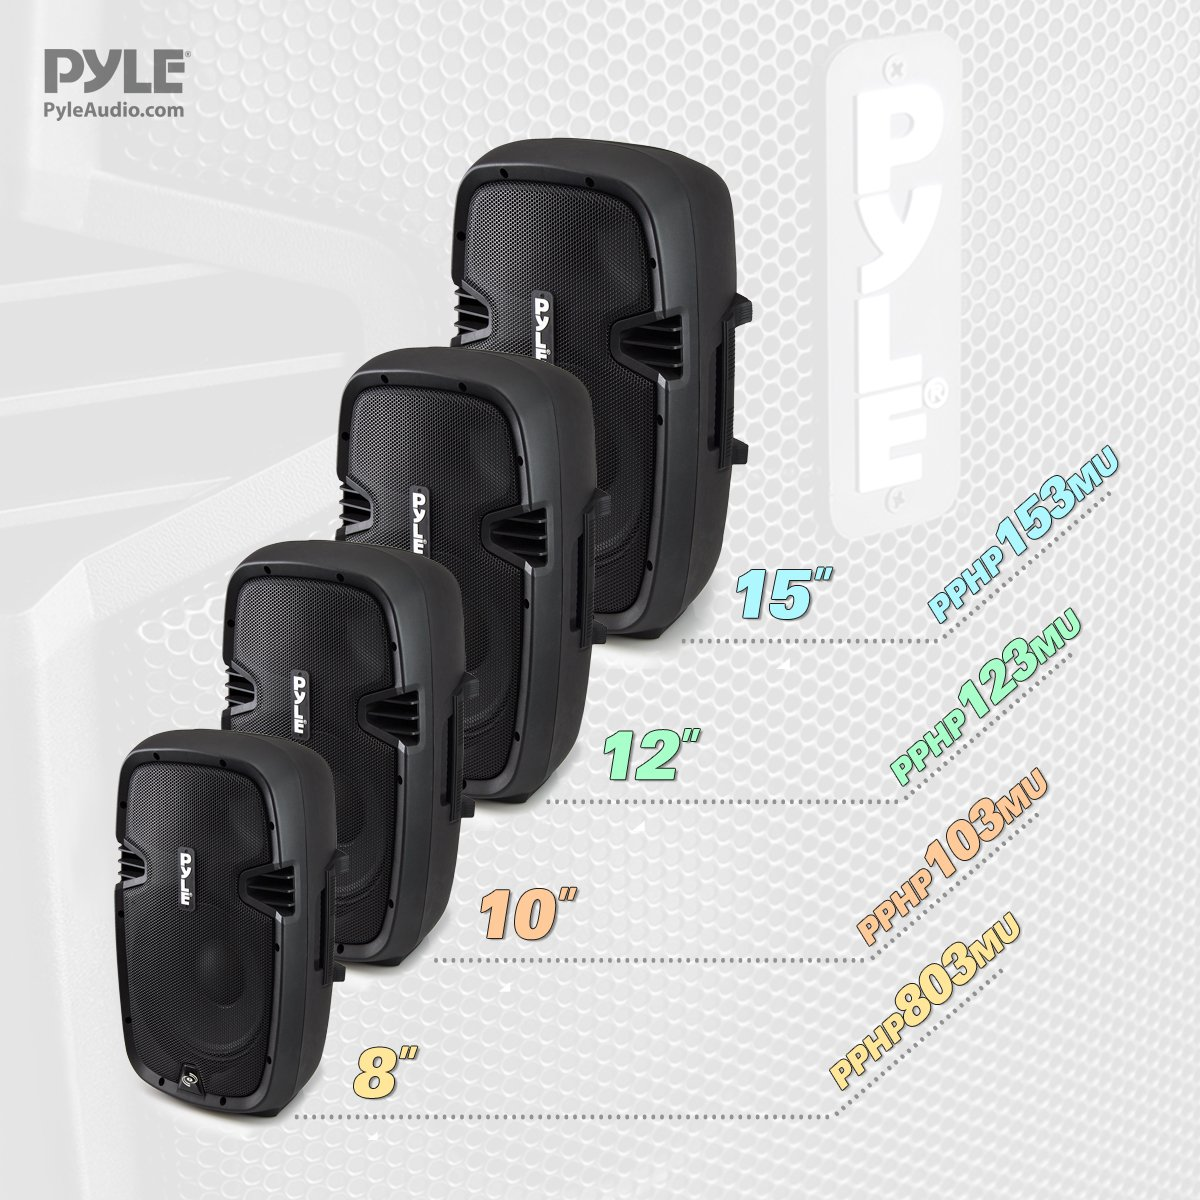 Pyle Powered Loudspeaker [Active PA Speaker System] Digital Sound Amplifier | 2-Way Stereo Sound & Power Bass | 8-Inch Subwoofer | 600 Watt (PPHP803MU) by Pyle